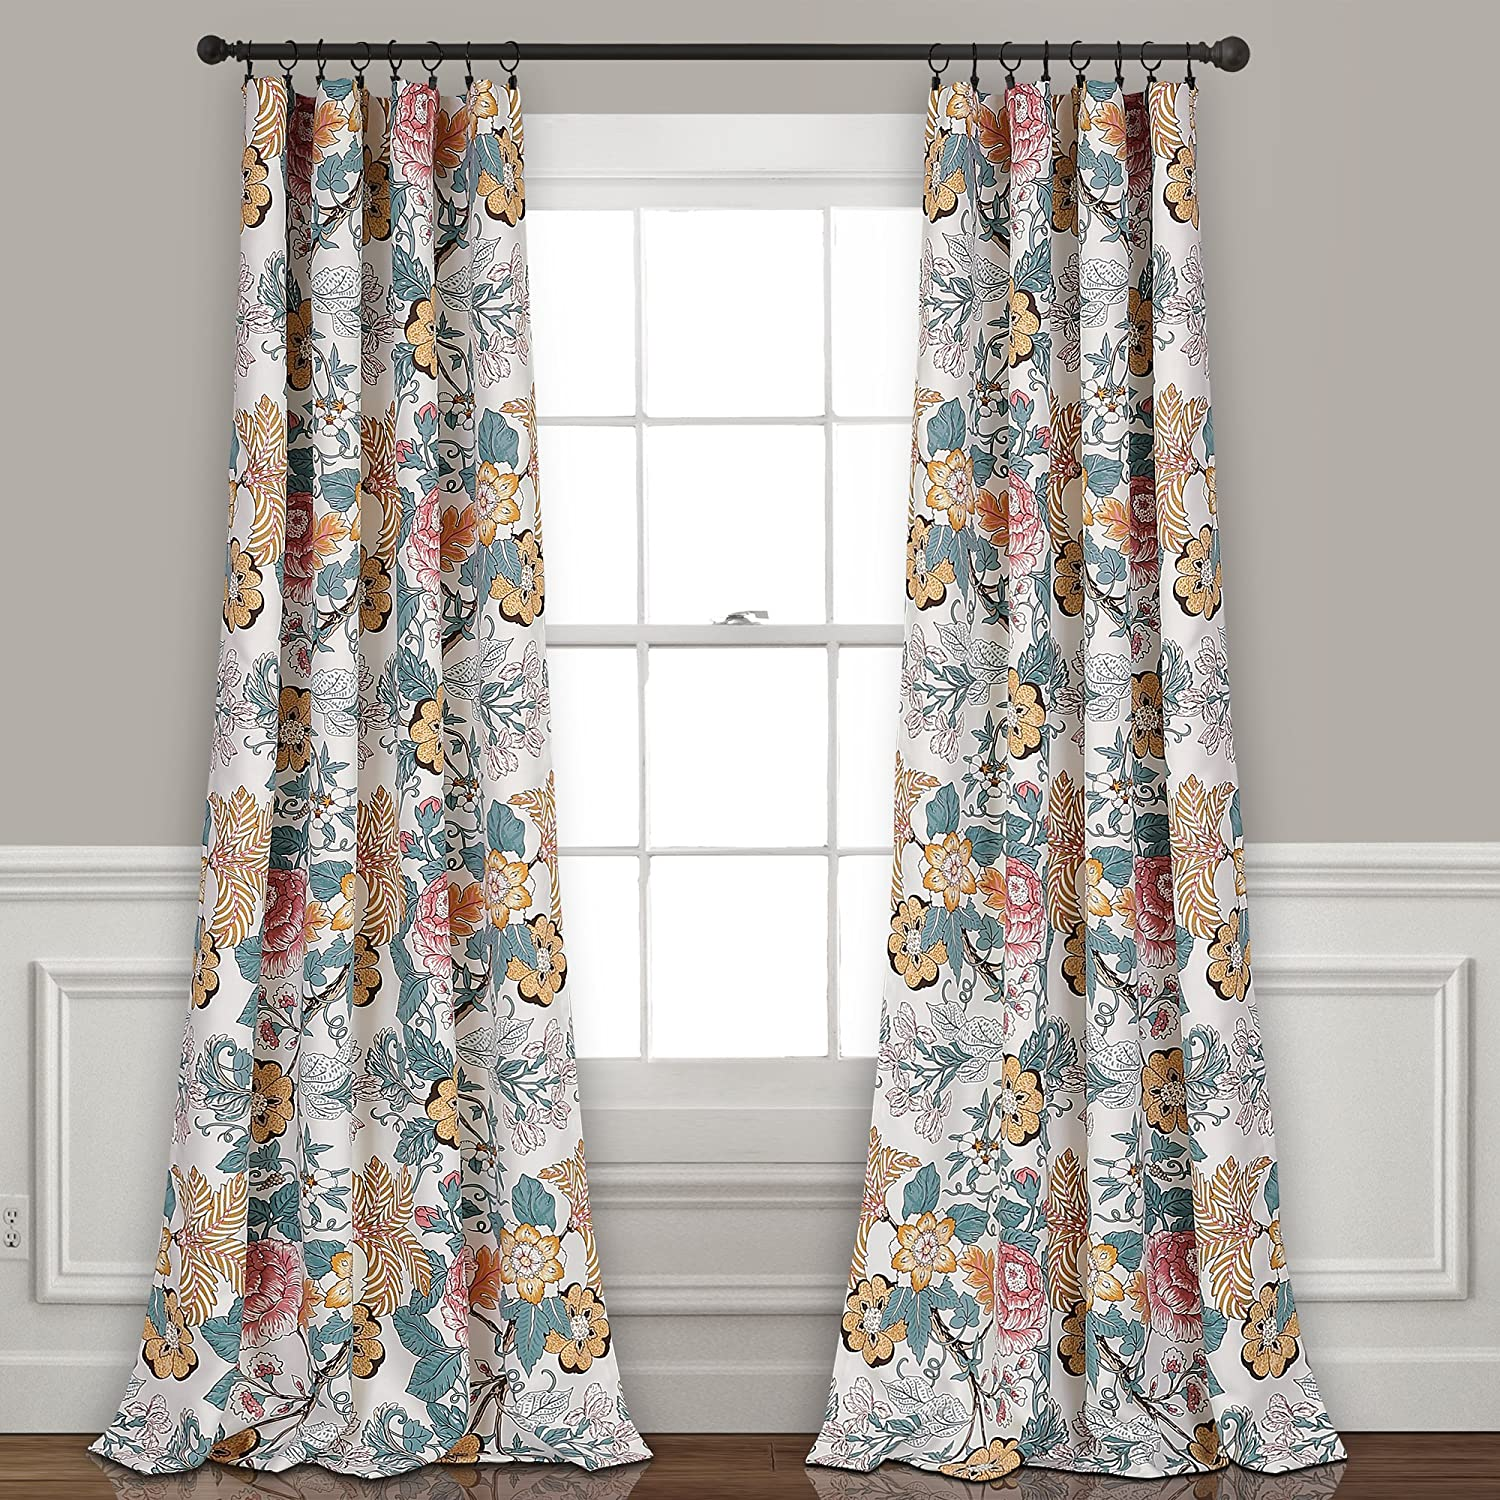 "Lush Decor Sydney Curtains | Floral Garden Room Darkening Window Panel Set for Living, Dining, Bedroom (Pair), 108"" x 52"", Blue and Yellow, L, Blue & Yellow"